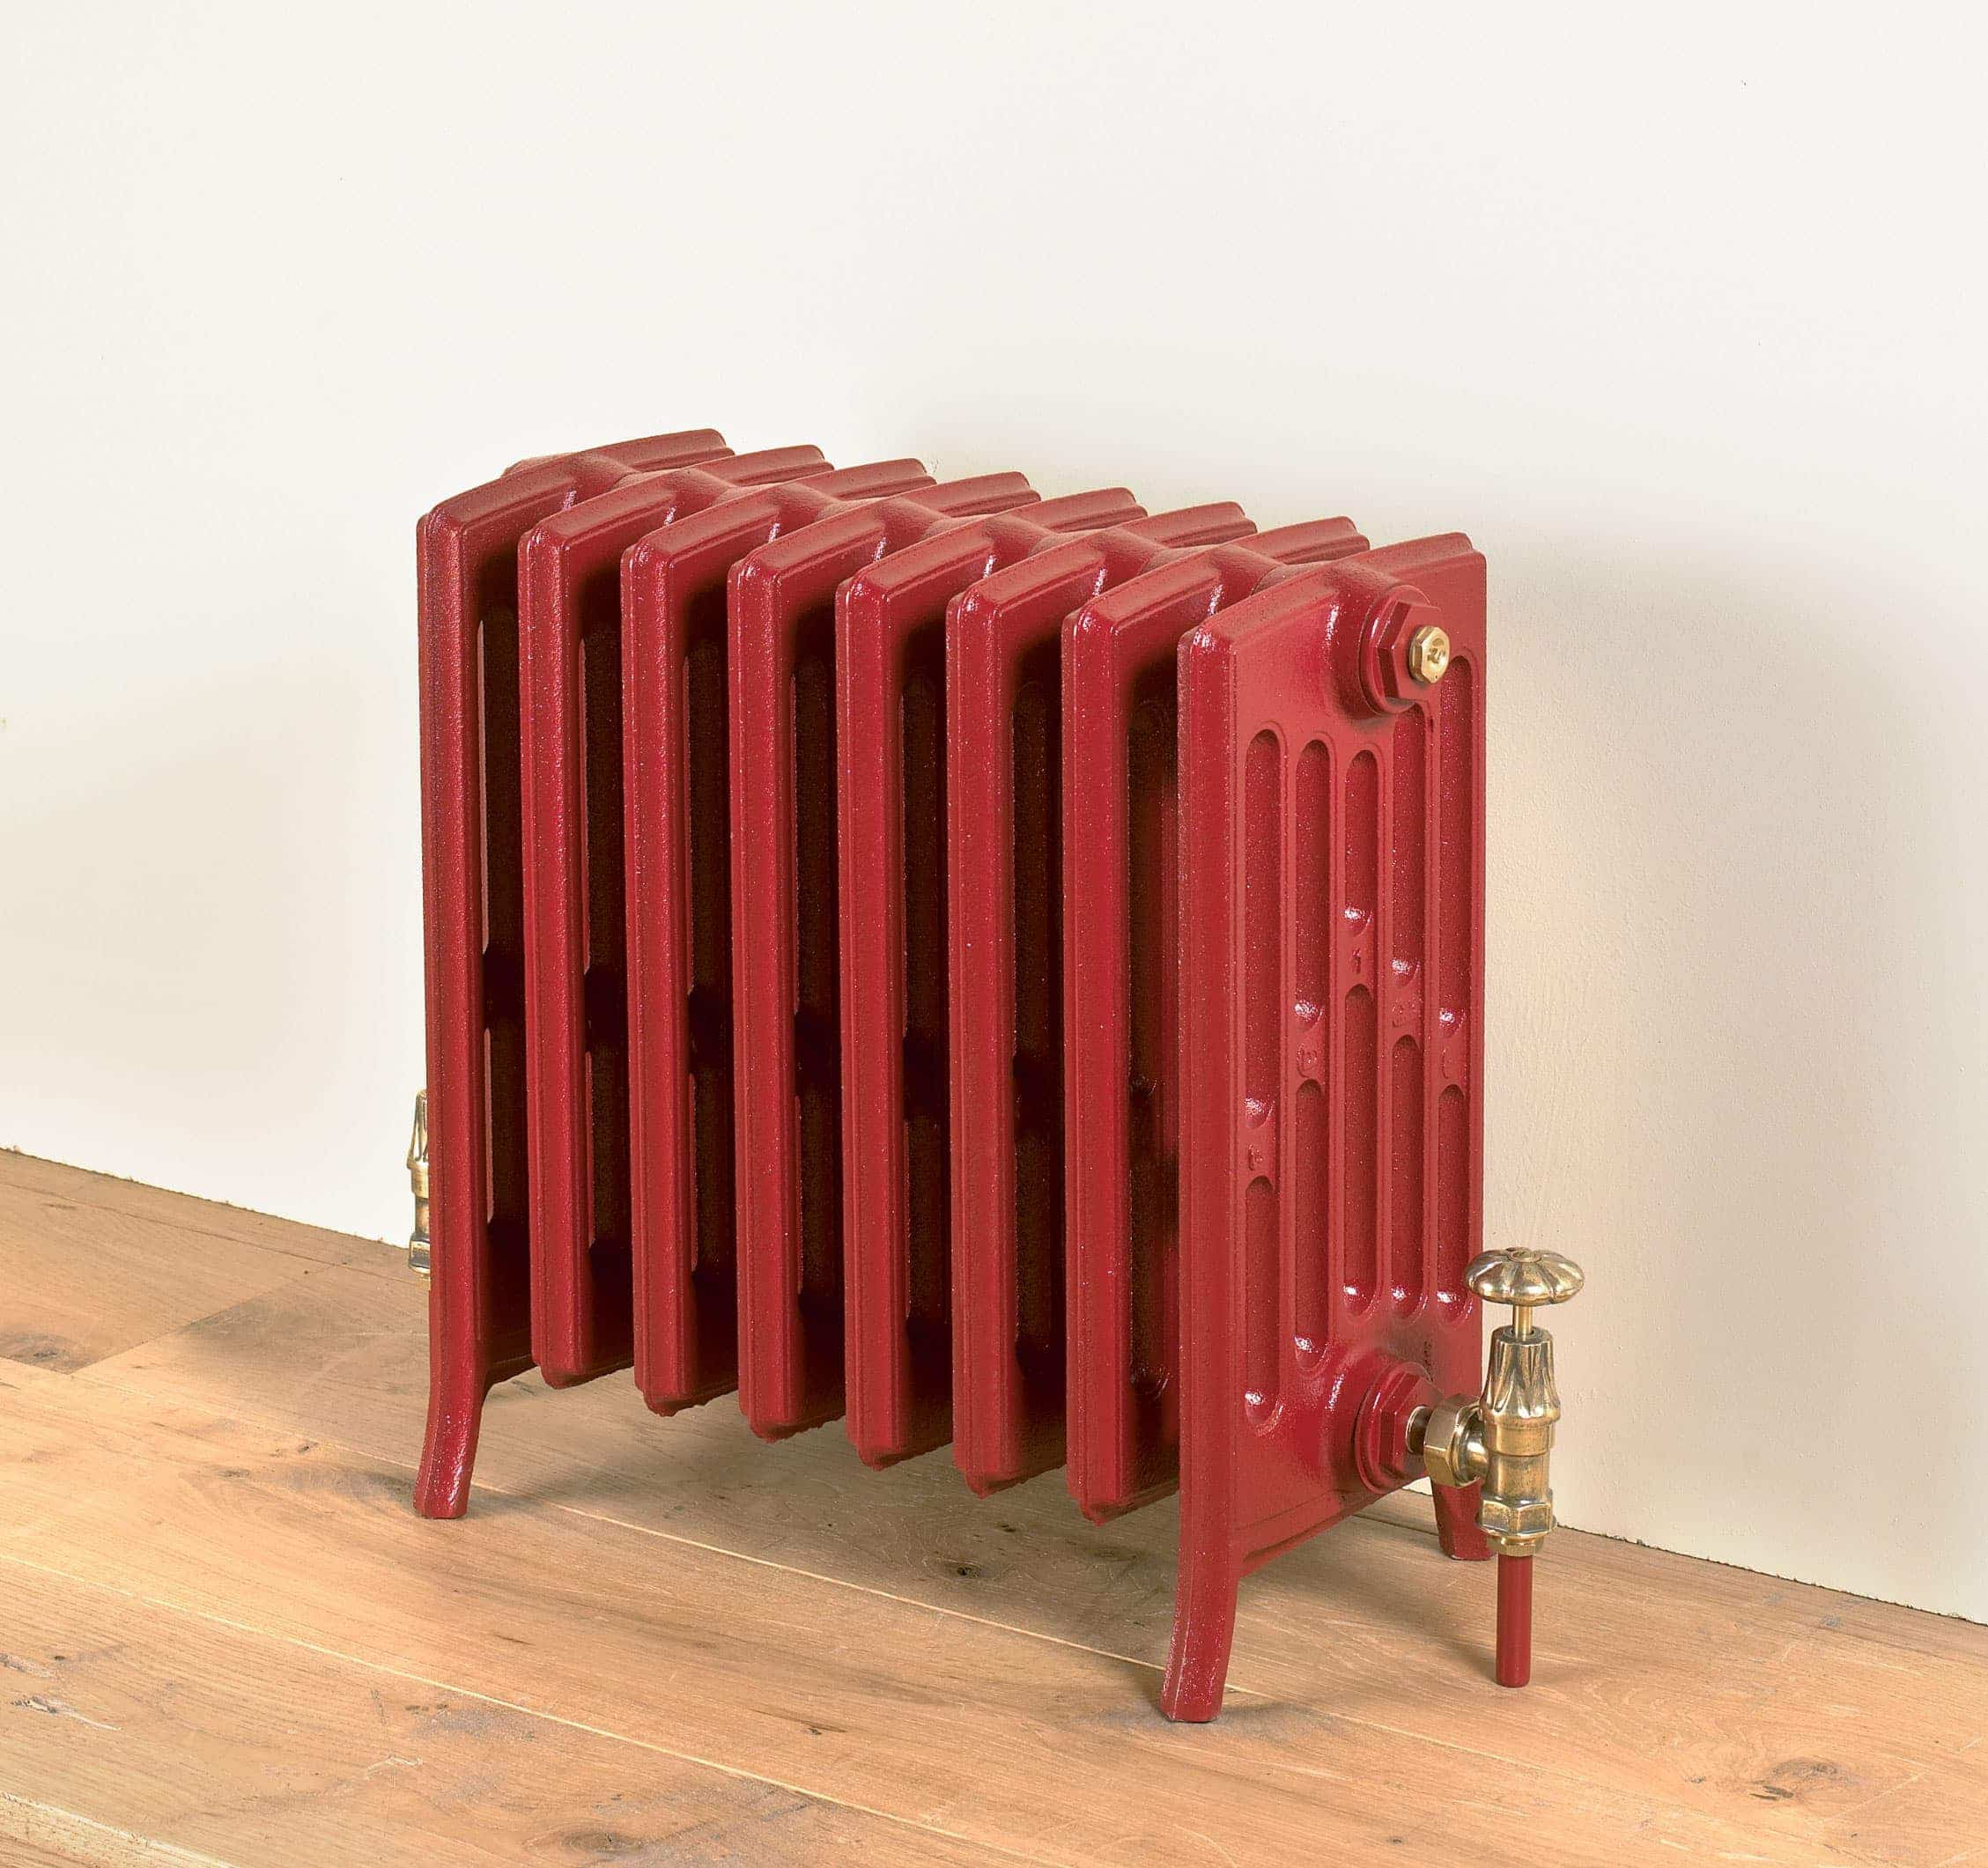 Etonian 6 Cast Iron Radiators (485mm to 660mm high) - Up to 15% off RRP